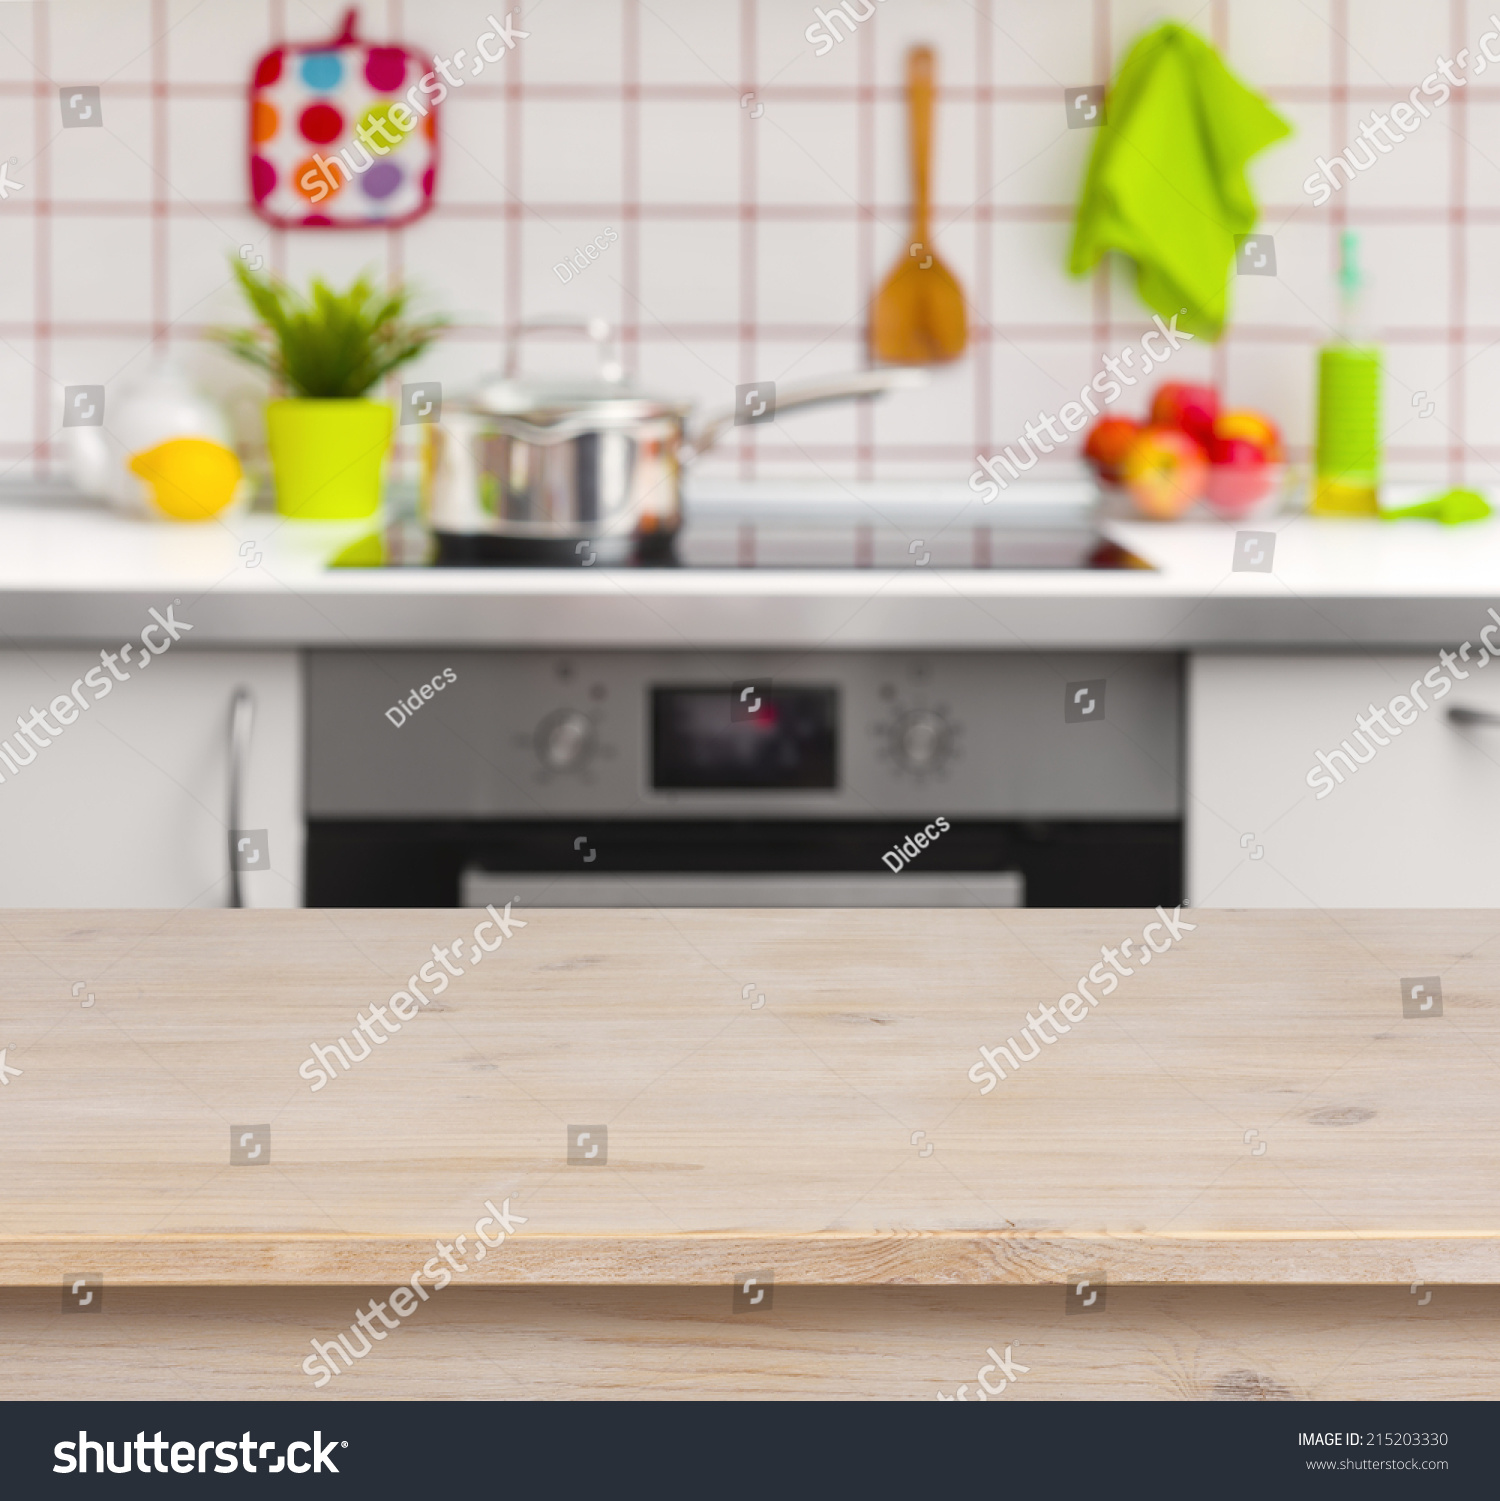 Kitchen Background Image: Wooden Table On Blurred Kitchen Bench Background Stock